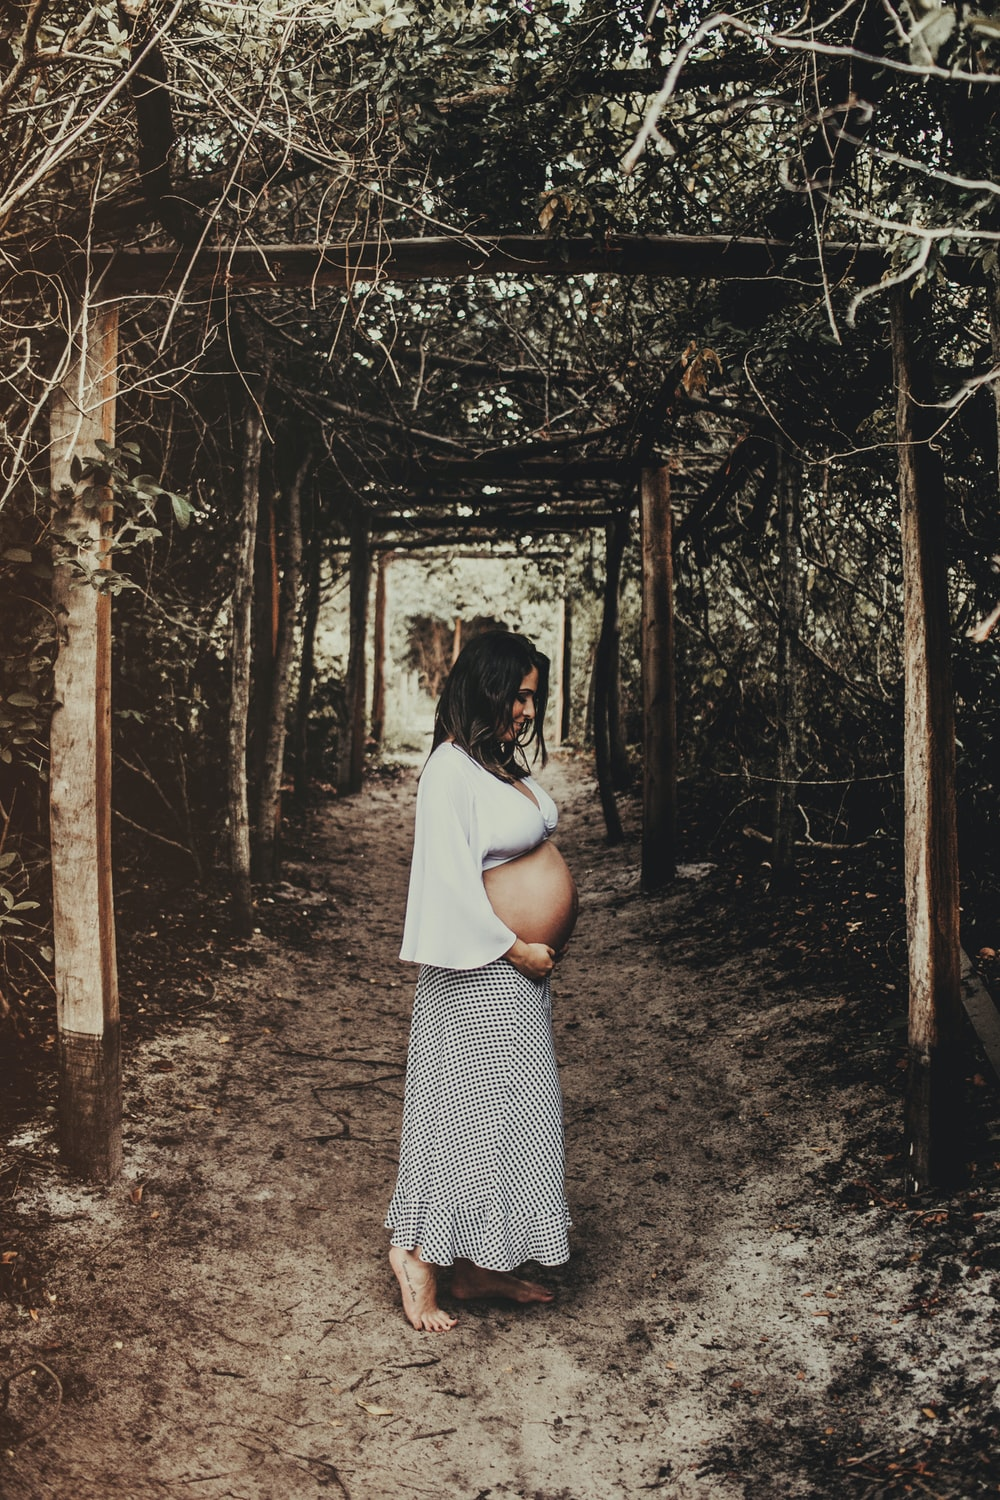 pregnant woman standing in tree tunnel